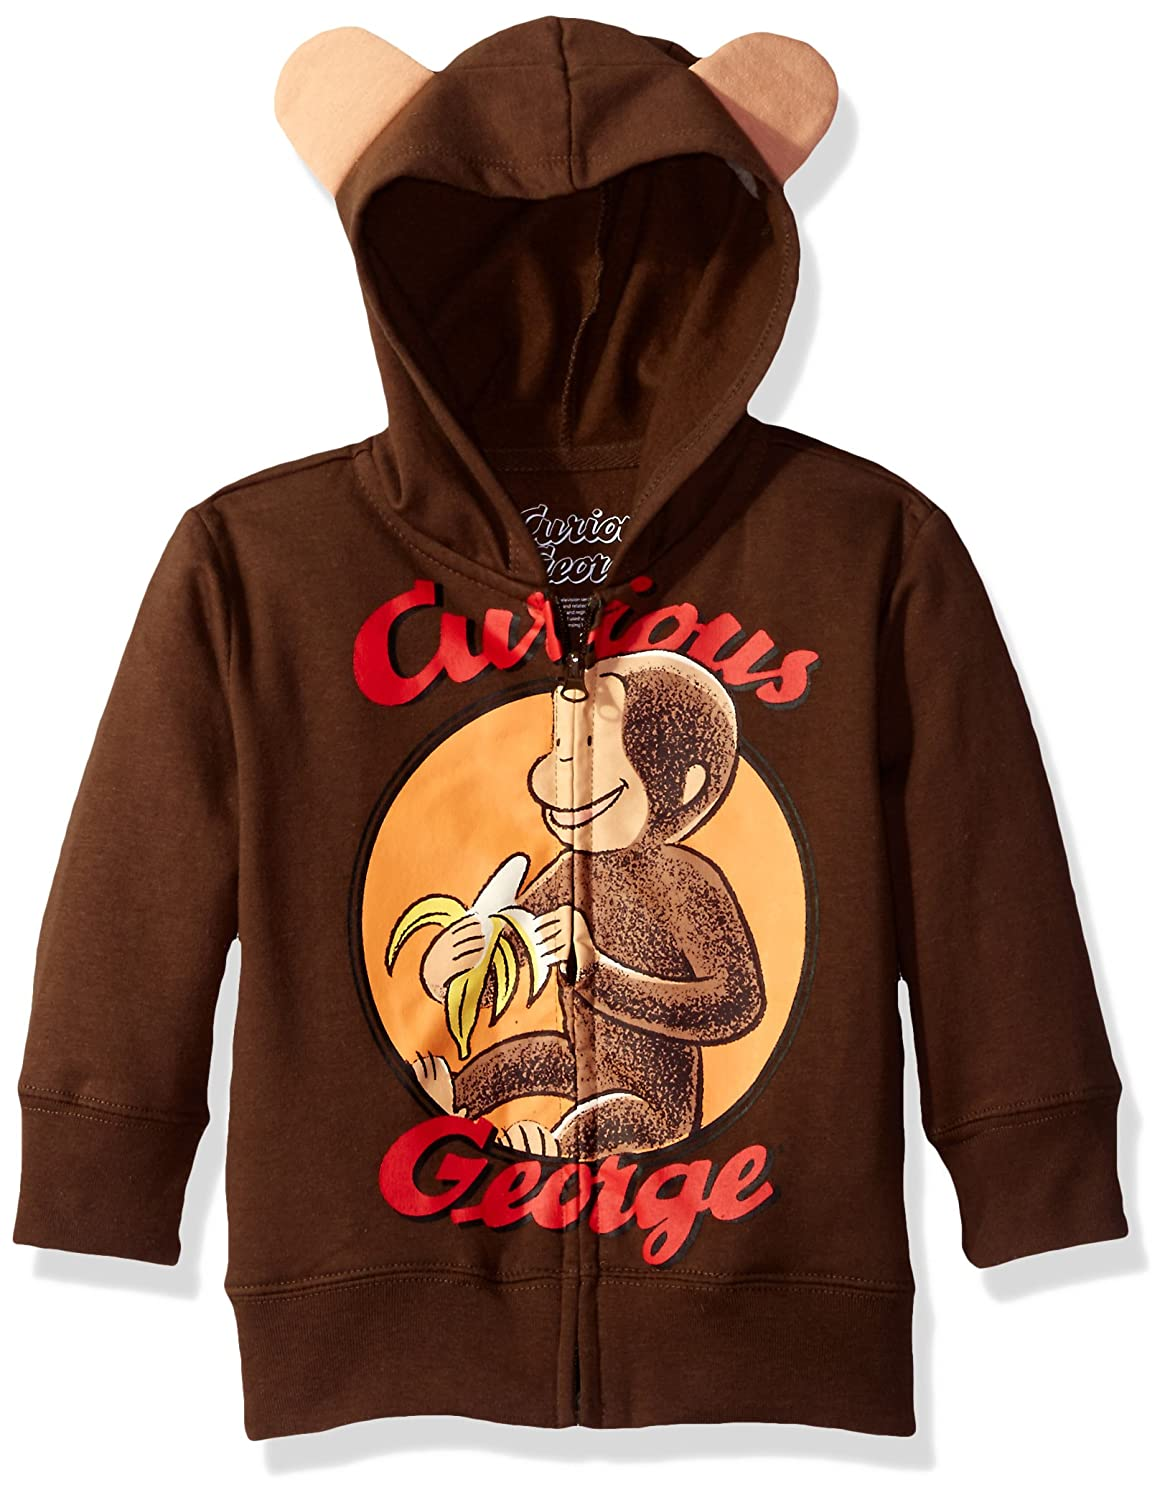 Curious George boys Toddler Boys Character Hoodie Freeze Children's Apparel JRSB251-5U86